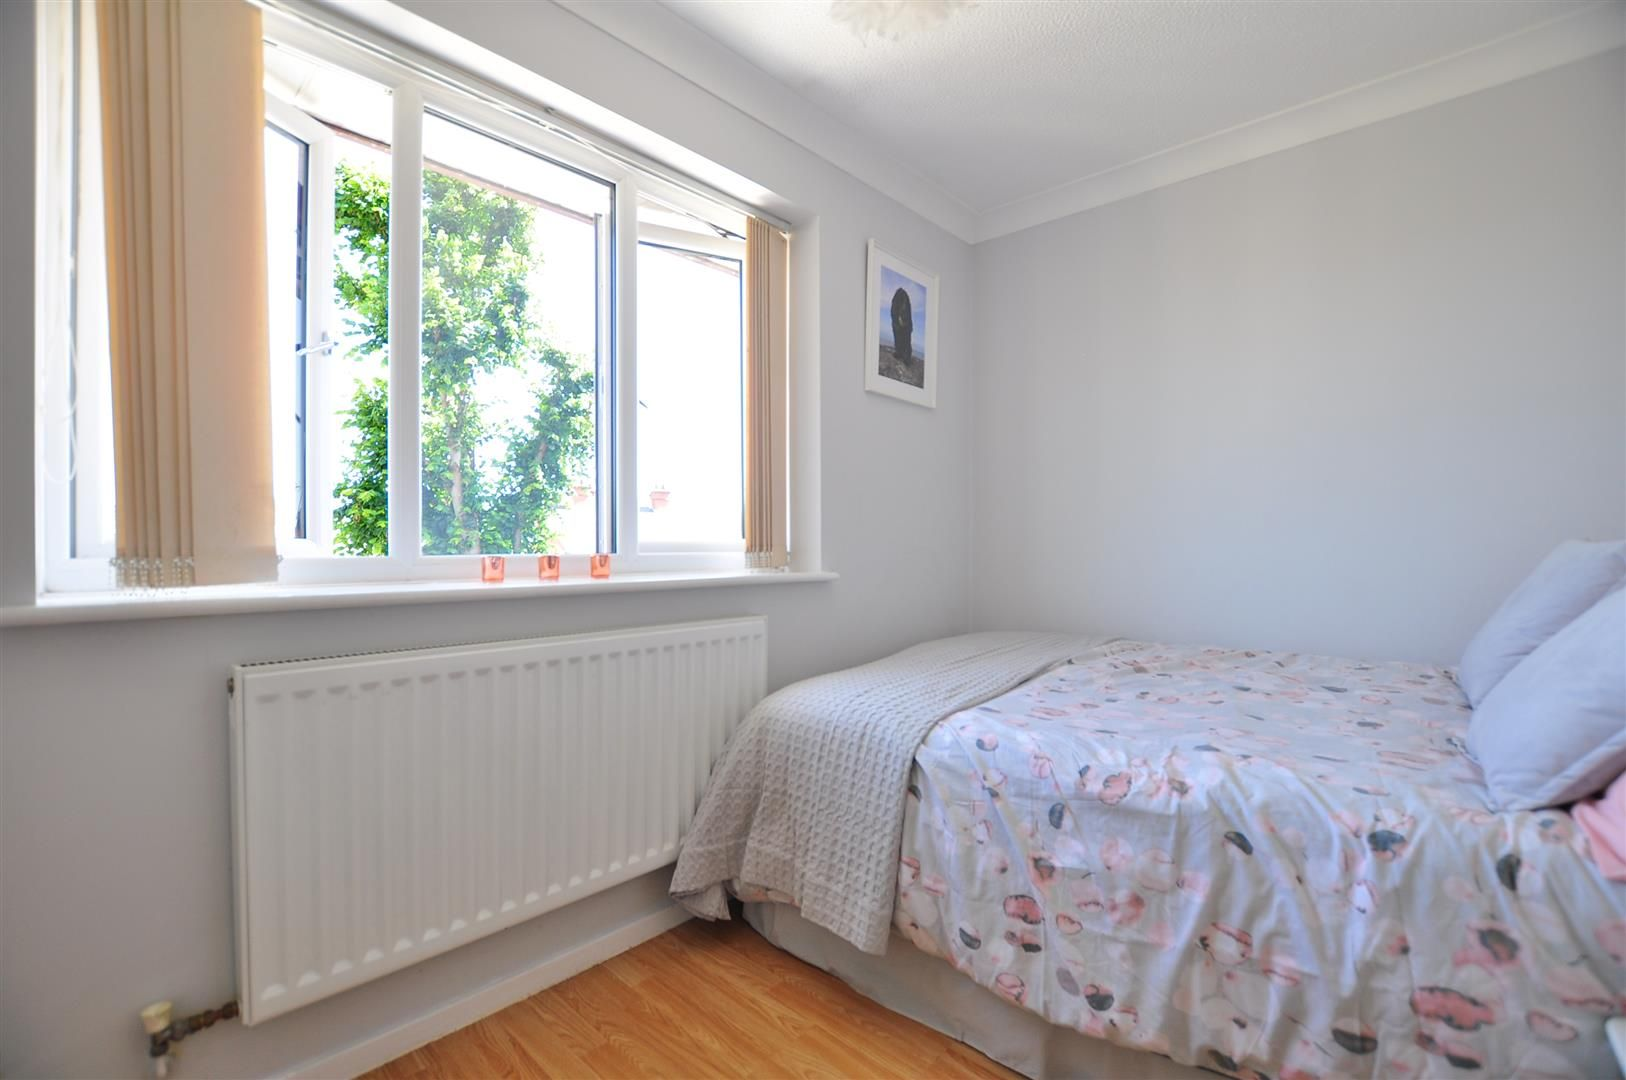 2 bed end-of-terrace for sale 15